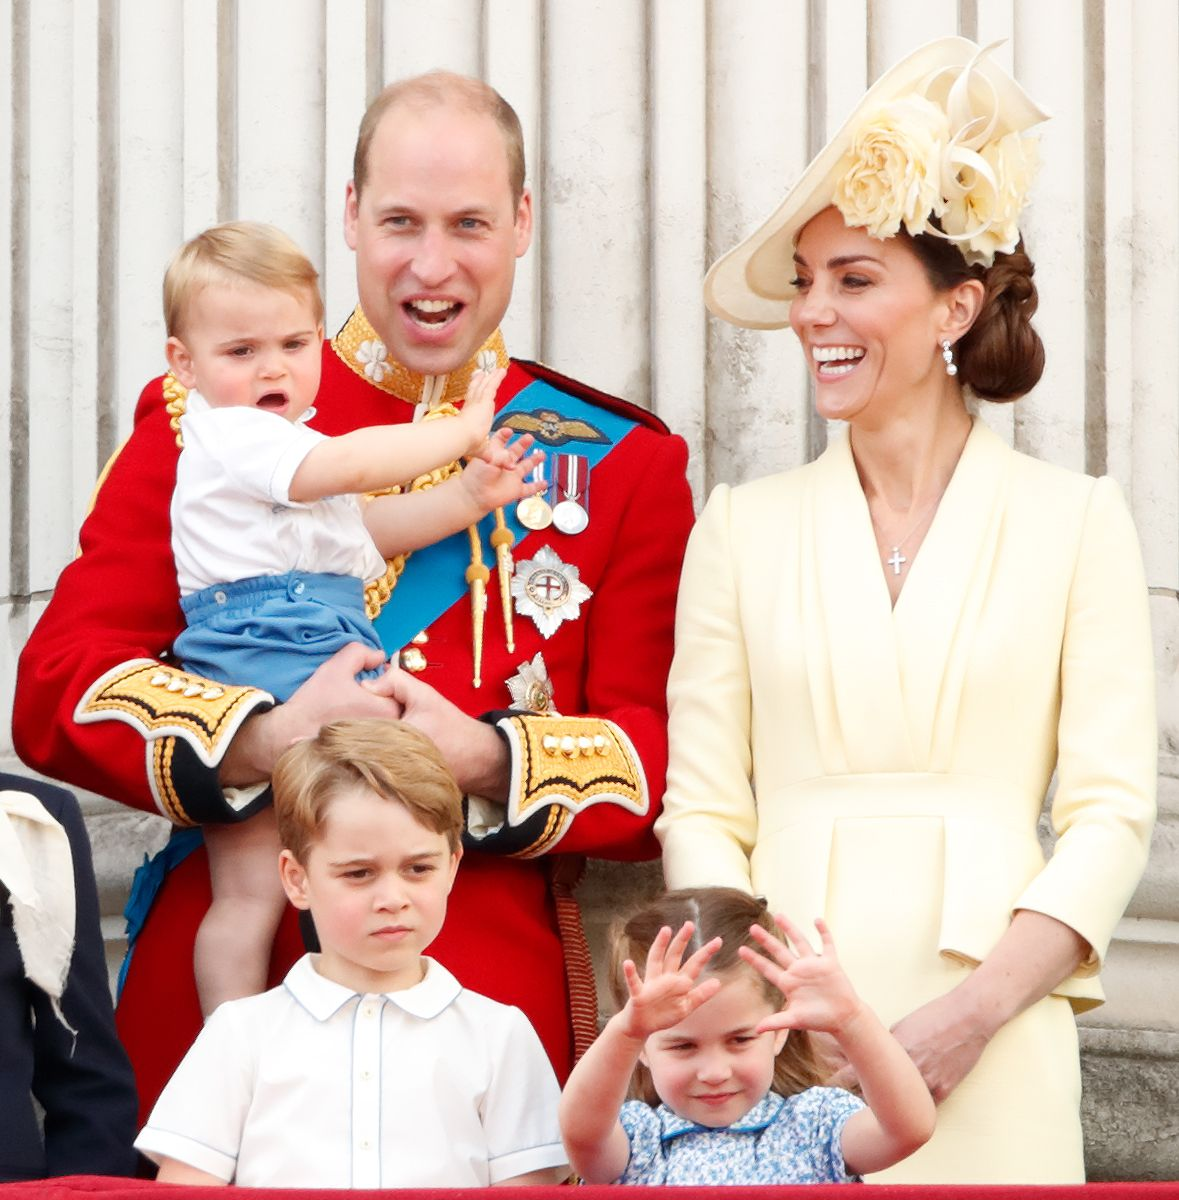 prince william kate middleton s cambridge family christmas card 2019 leaked online cambridge family christmas card 2019